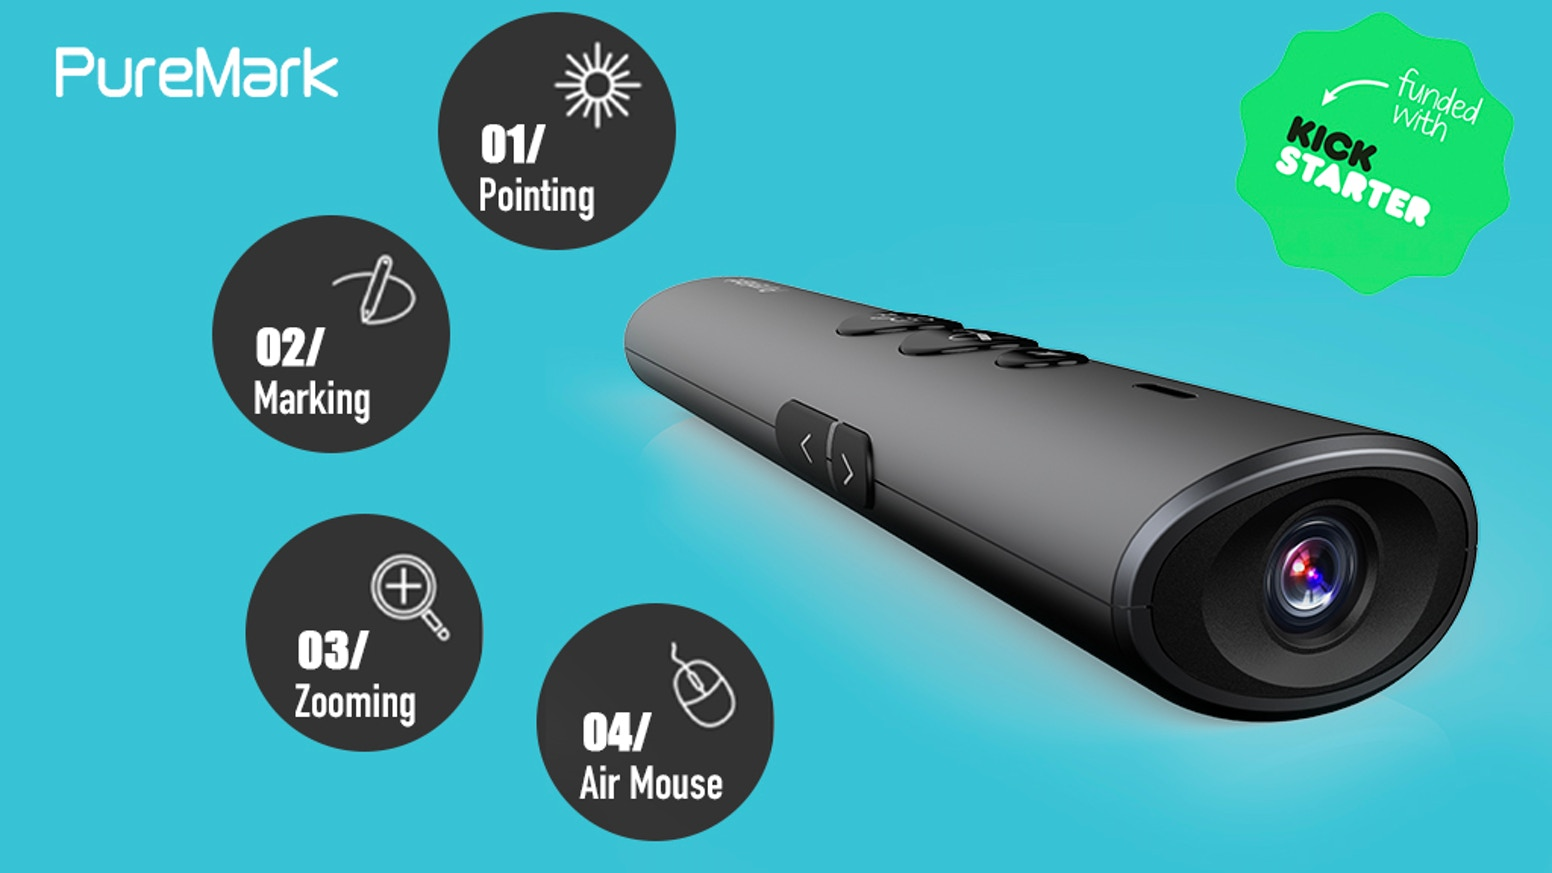 The Wireless Presenter with air mouse and rich interaction function to boost efficiency and productivity